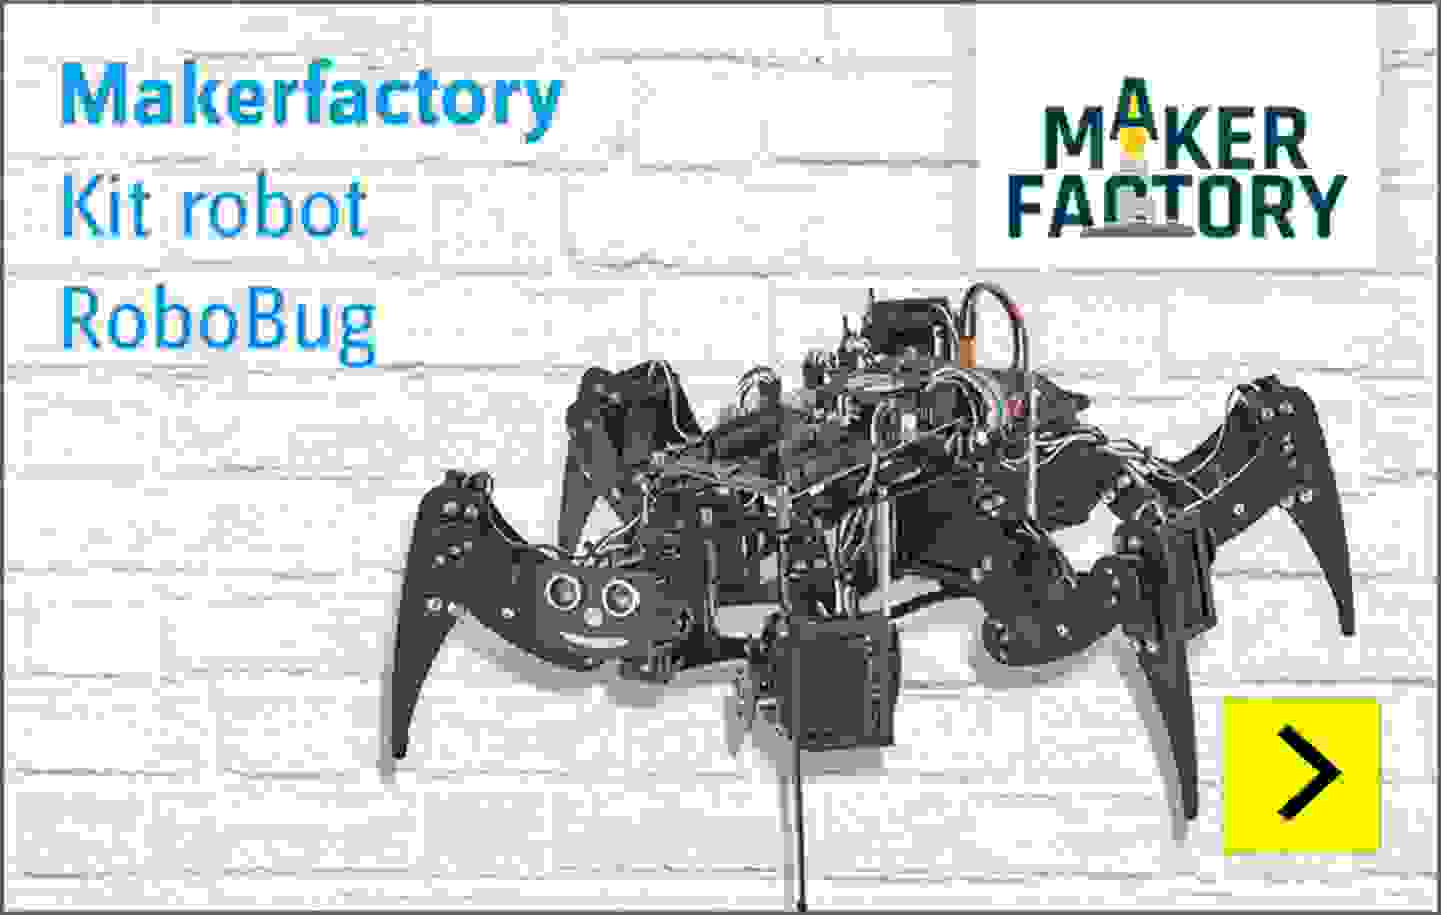 Makerfactory - Kit robot RoboBug